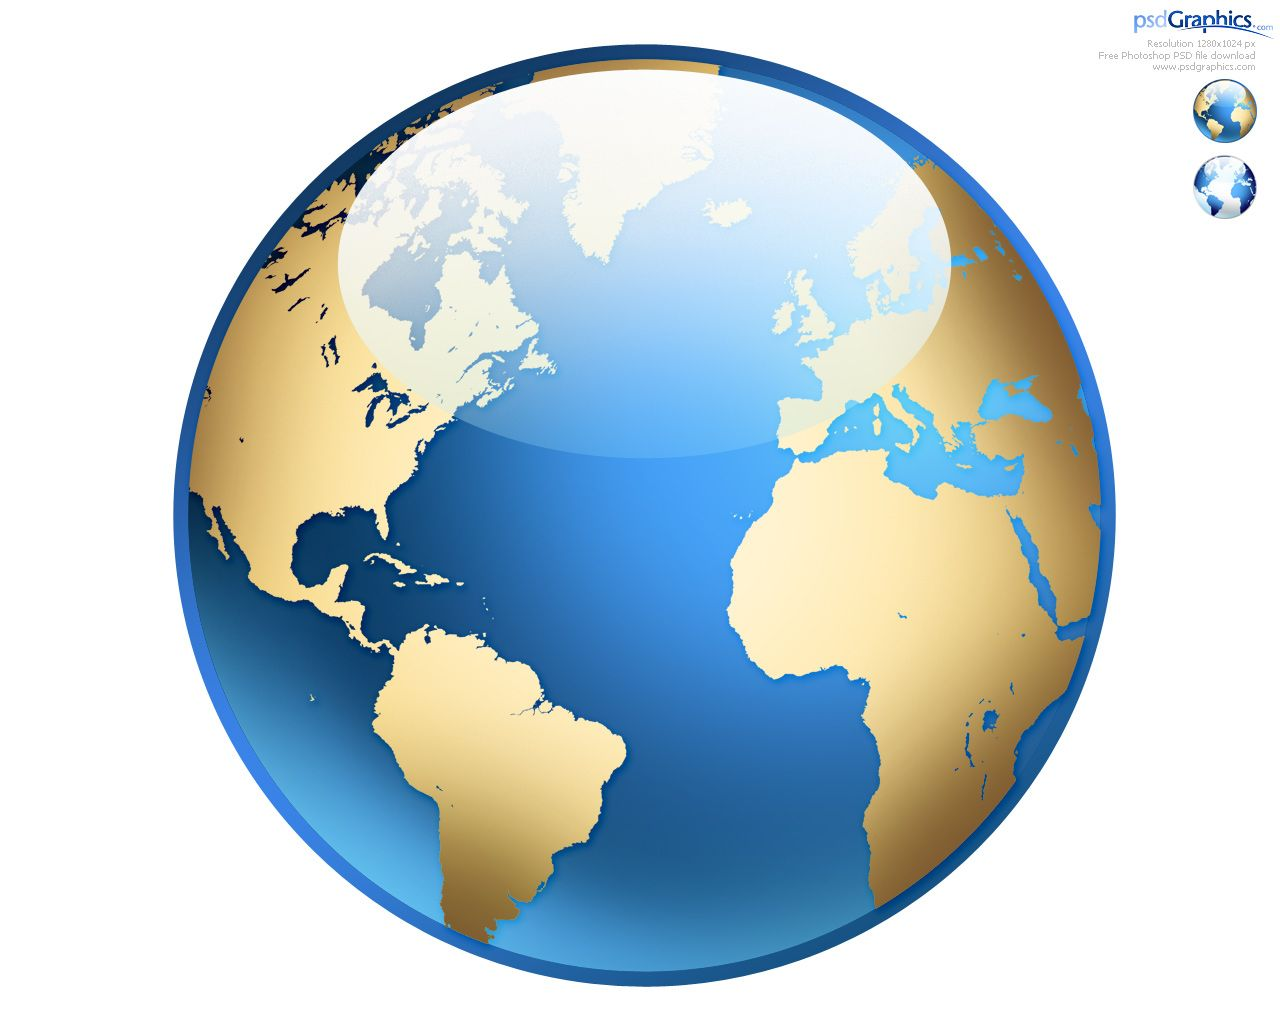 Pictures of globes of the world clipart best the world is ultimate globes specializes in the sale of world globes and maps for the home office and classroom established in our company has grown to become the gumiabroncs Choice Image